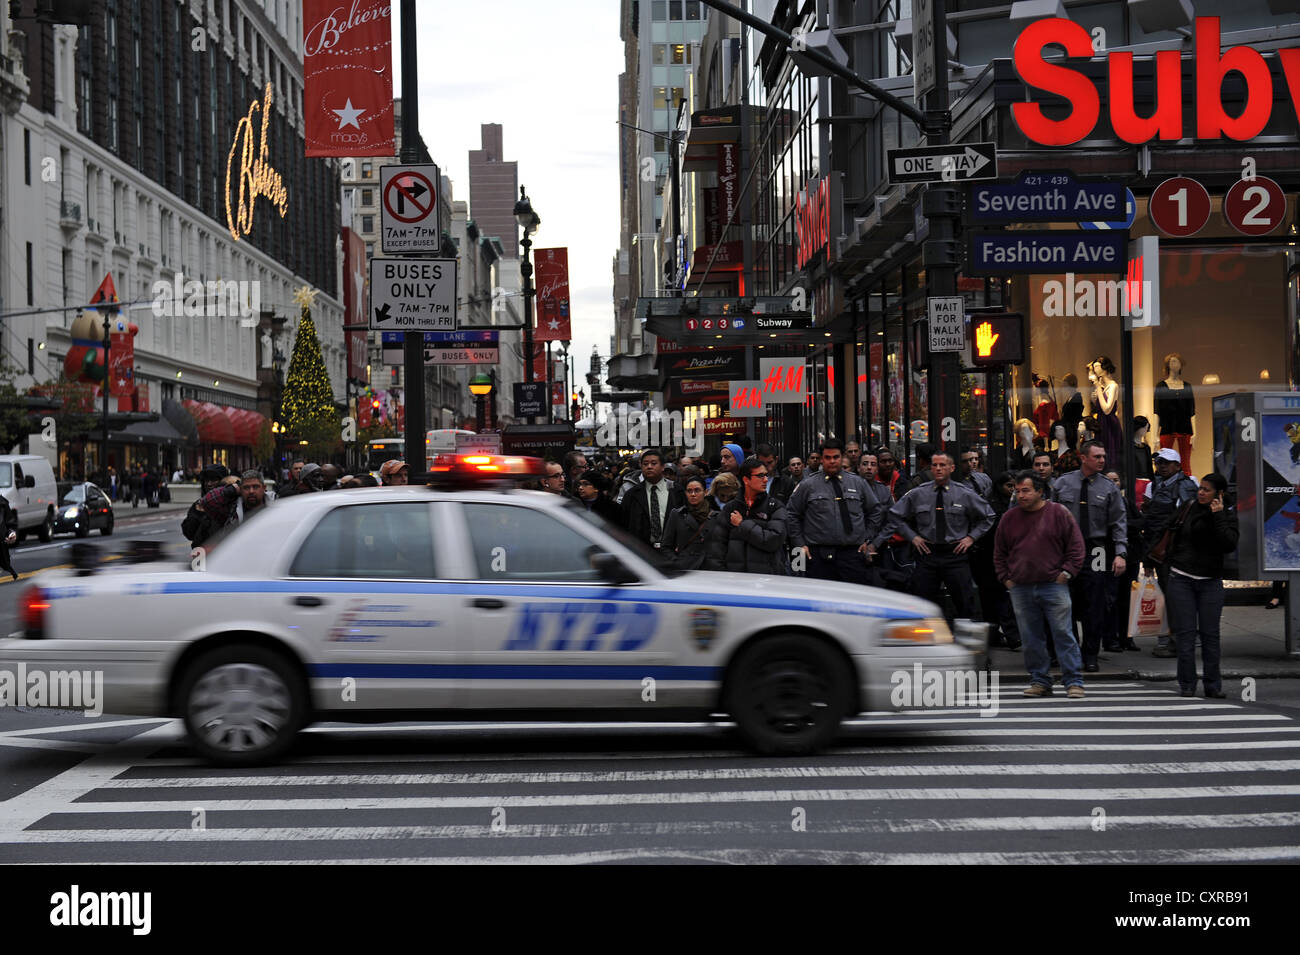 Street scene with a police car of the nypd new york for Bureau new york